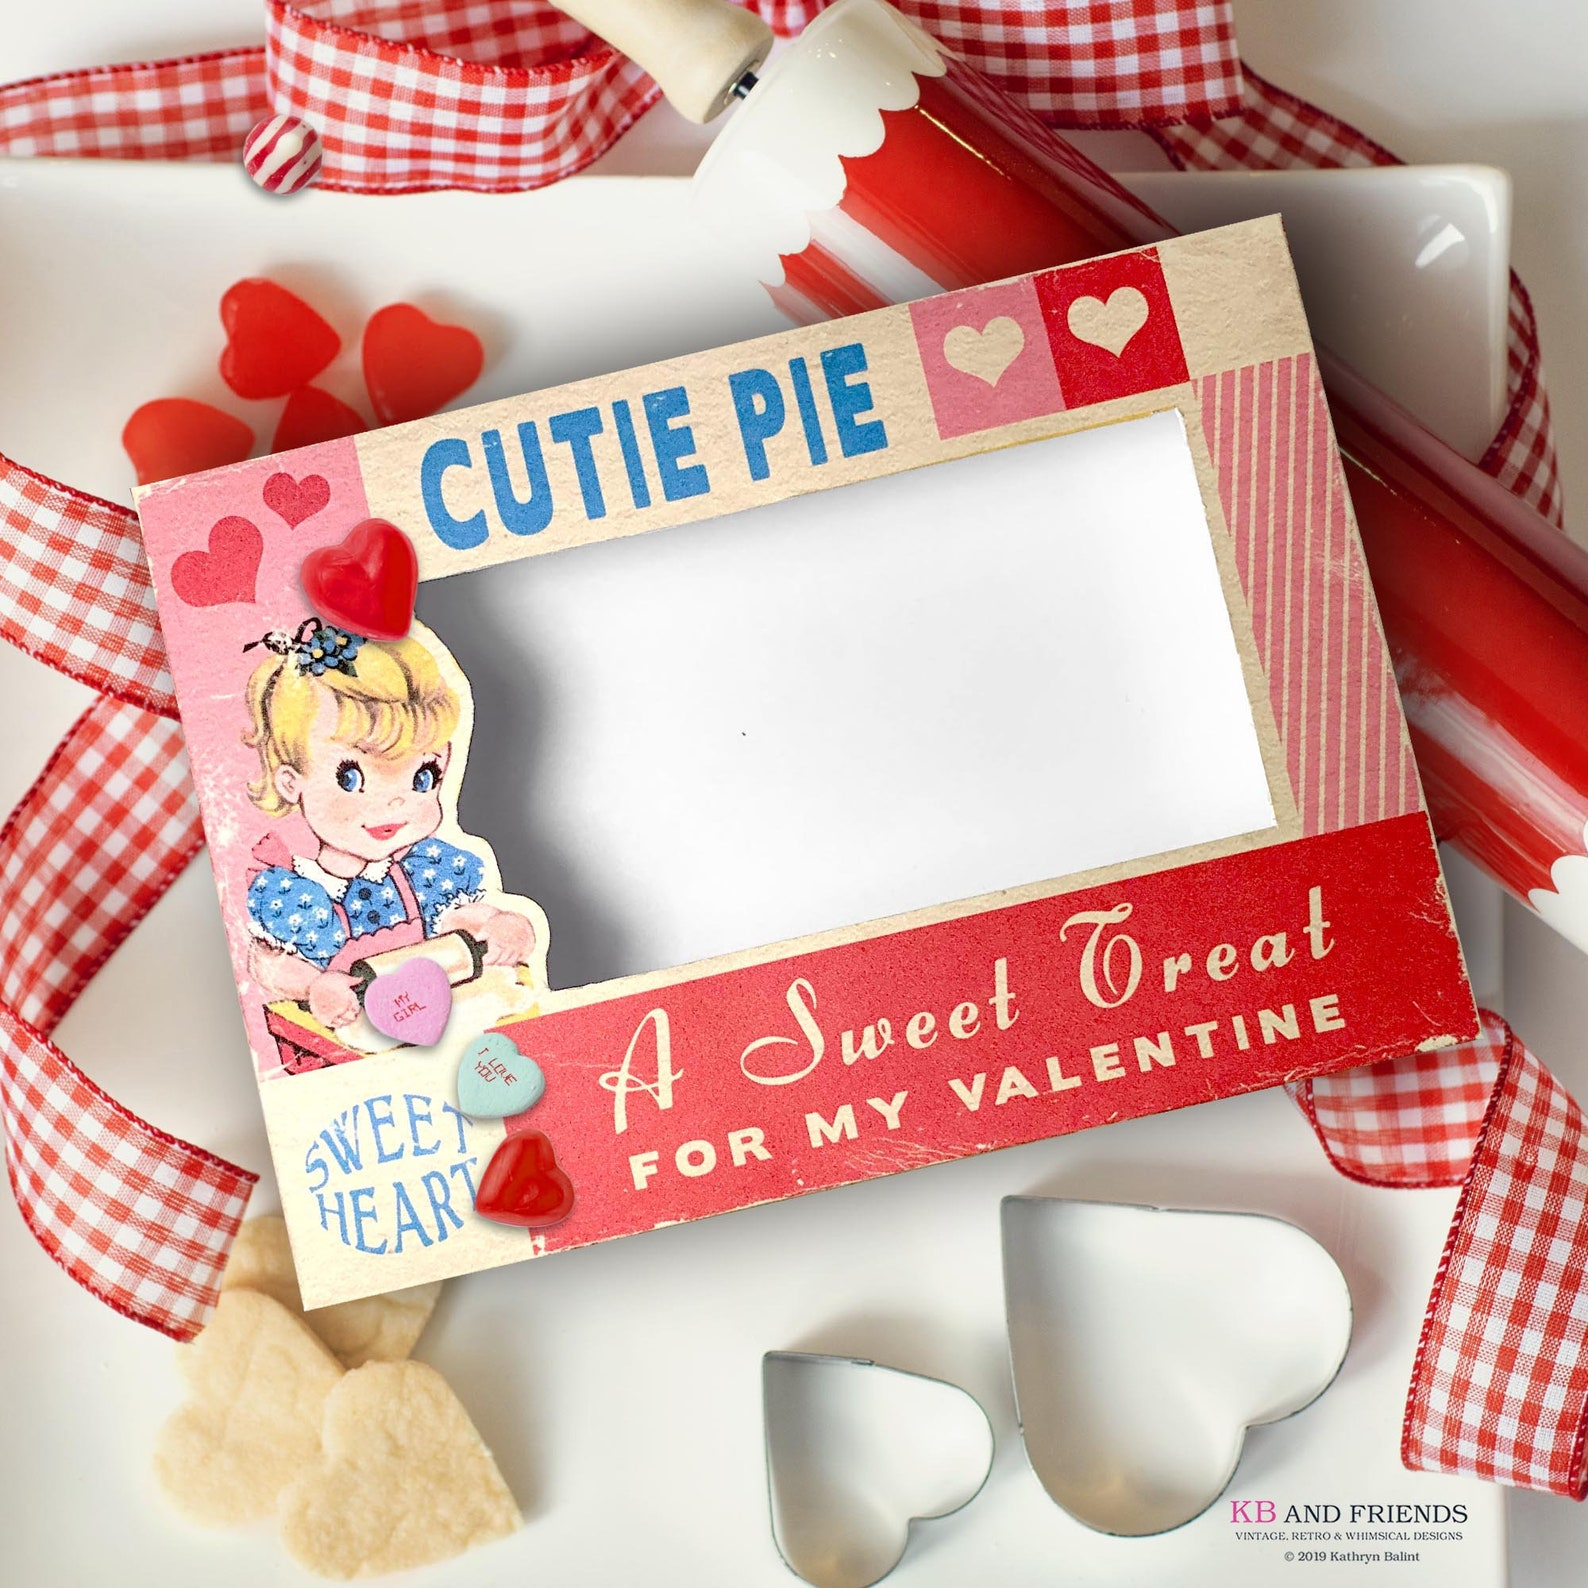 KB and Friends' Cute Pie Valentine's Day Box